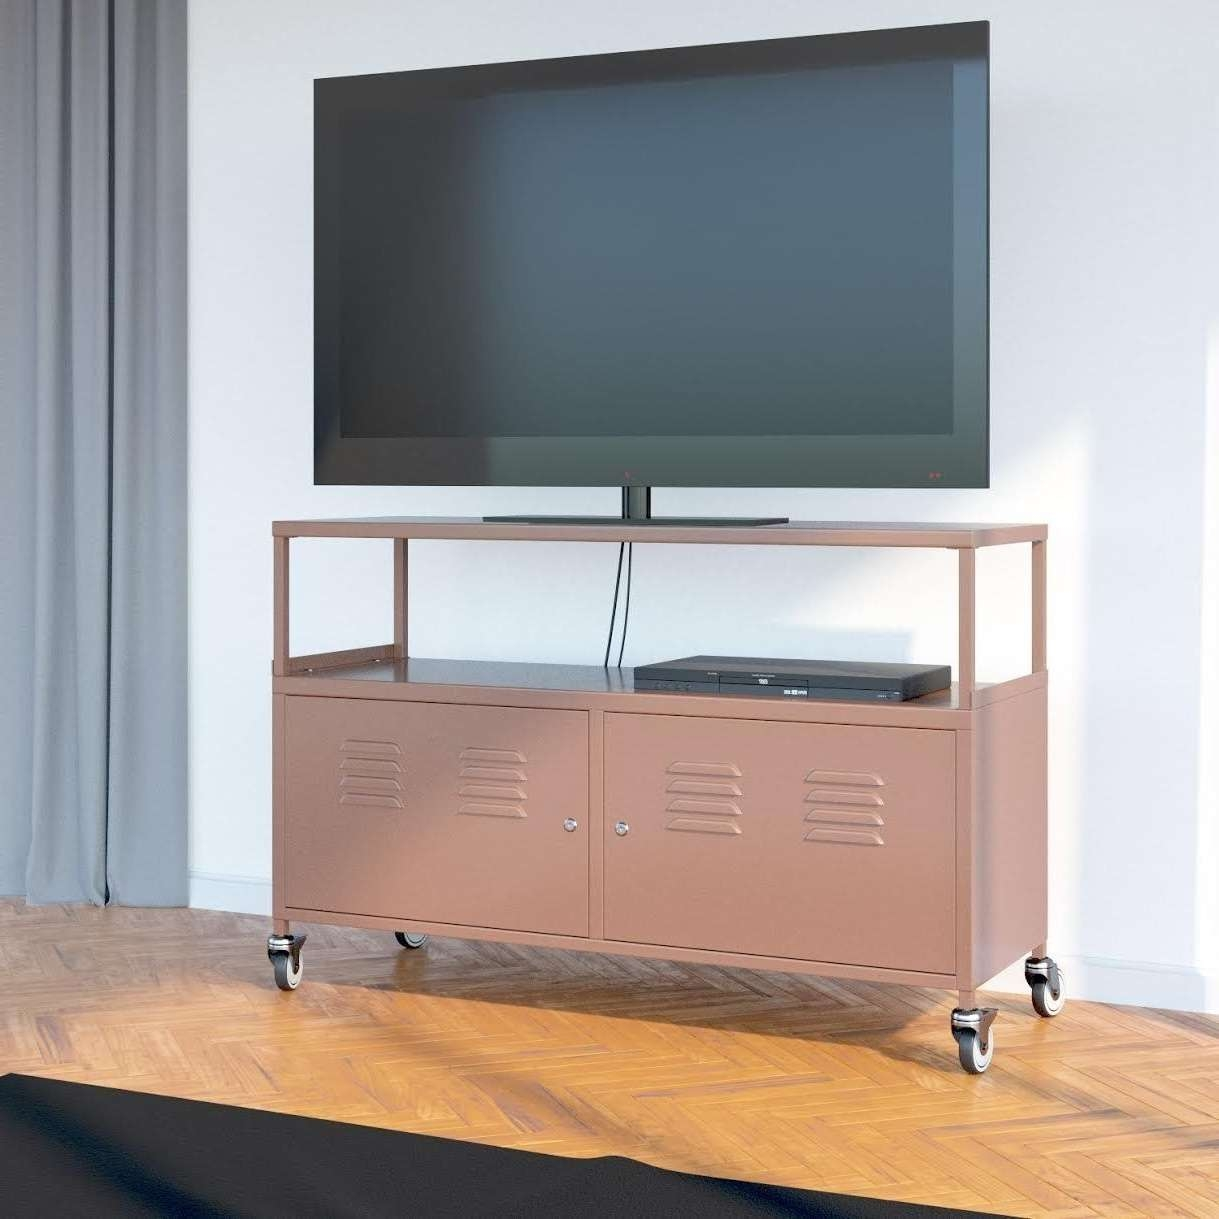 Tuscany Metal Lockable Tv Stand Cabinet Media Storage With Rolling Throughout Lockable Tv Stands (View 14 of 20)